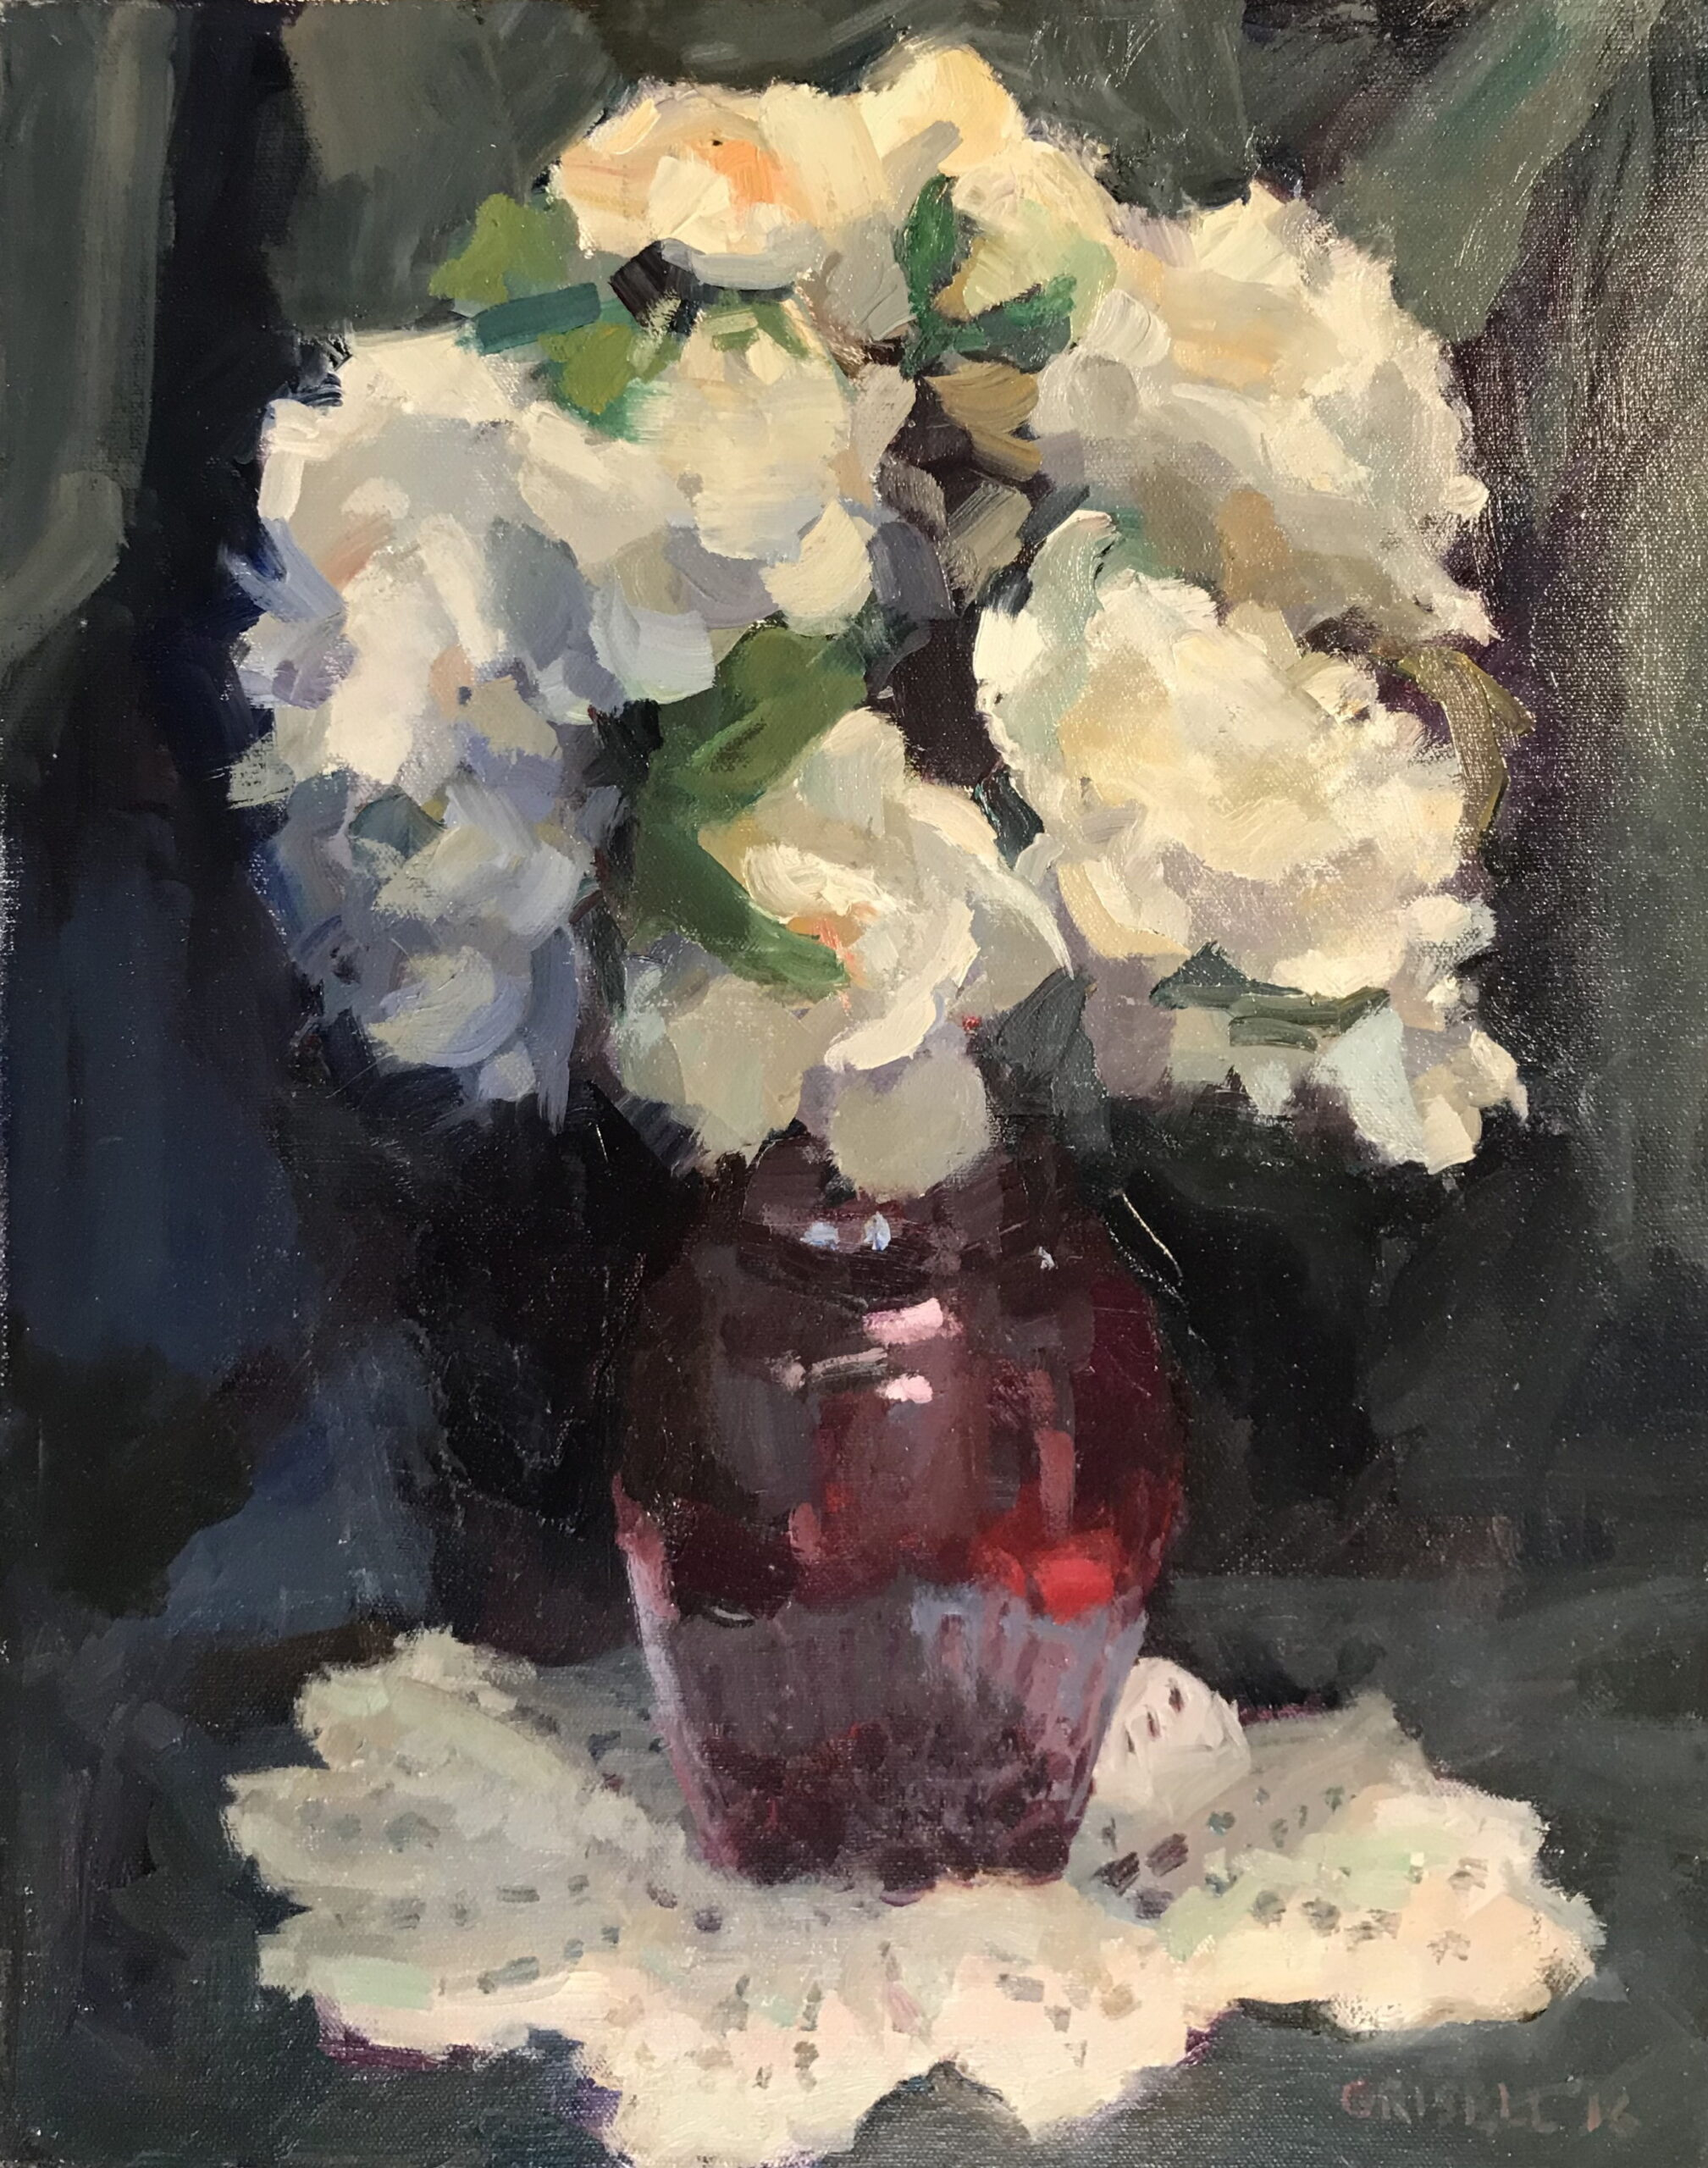 Red Vase, Oil on Canvas, 20 x 16 Inches, by Susan Grisell, $550